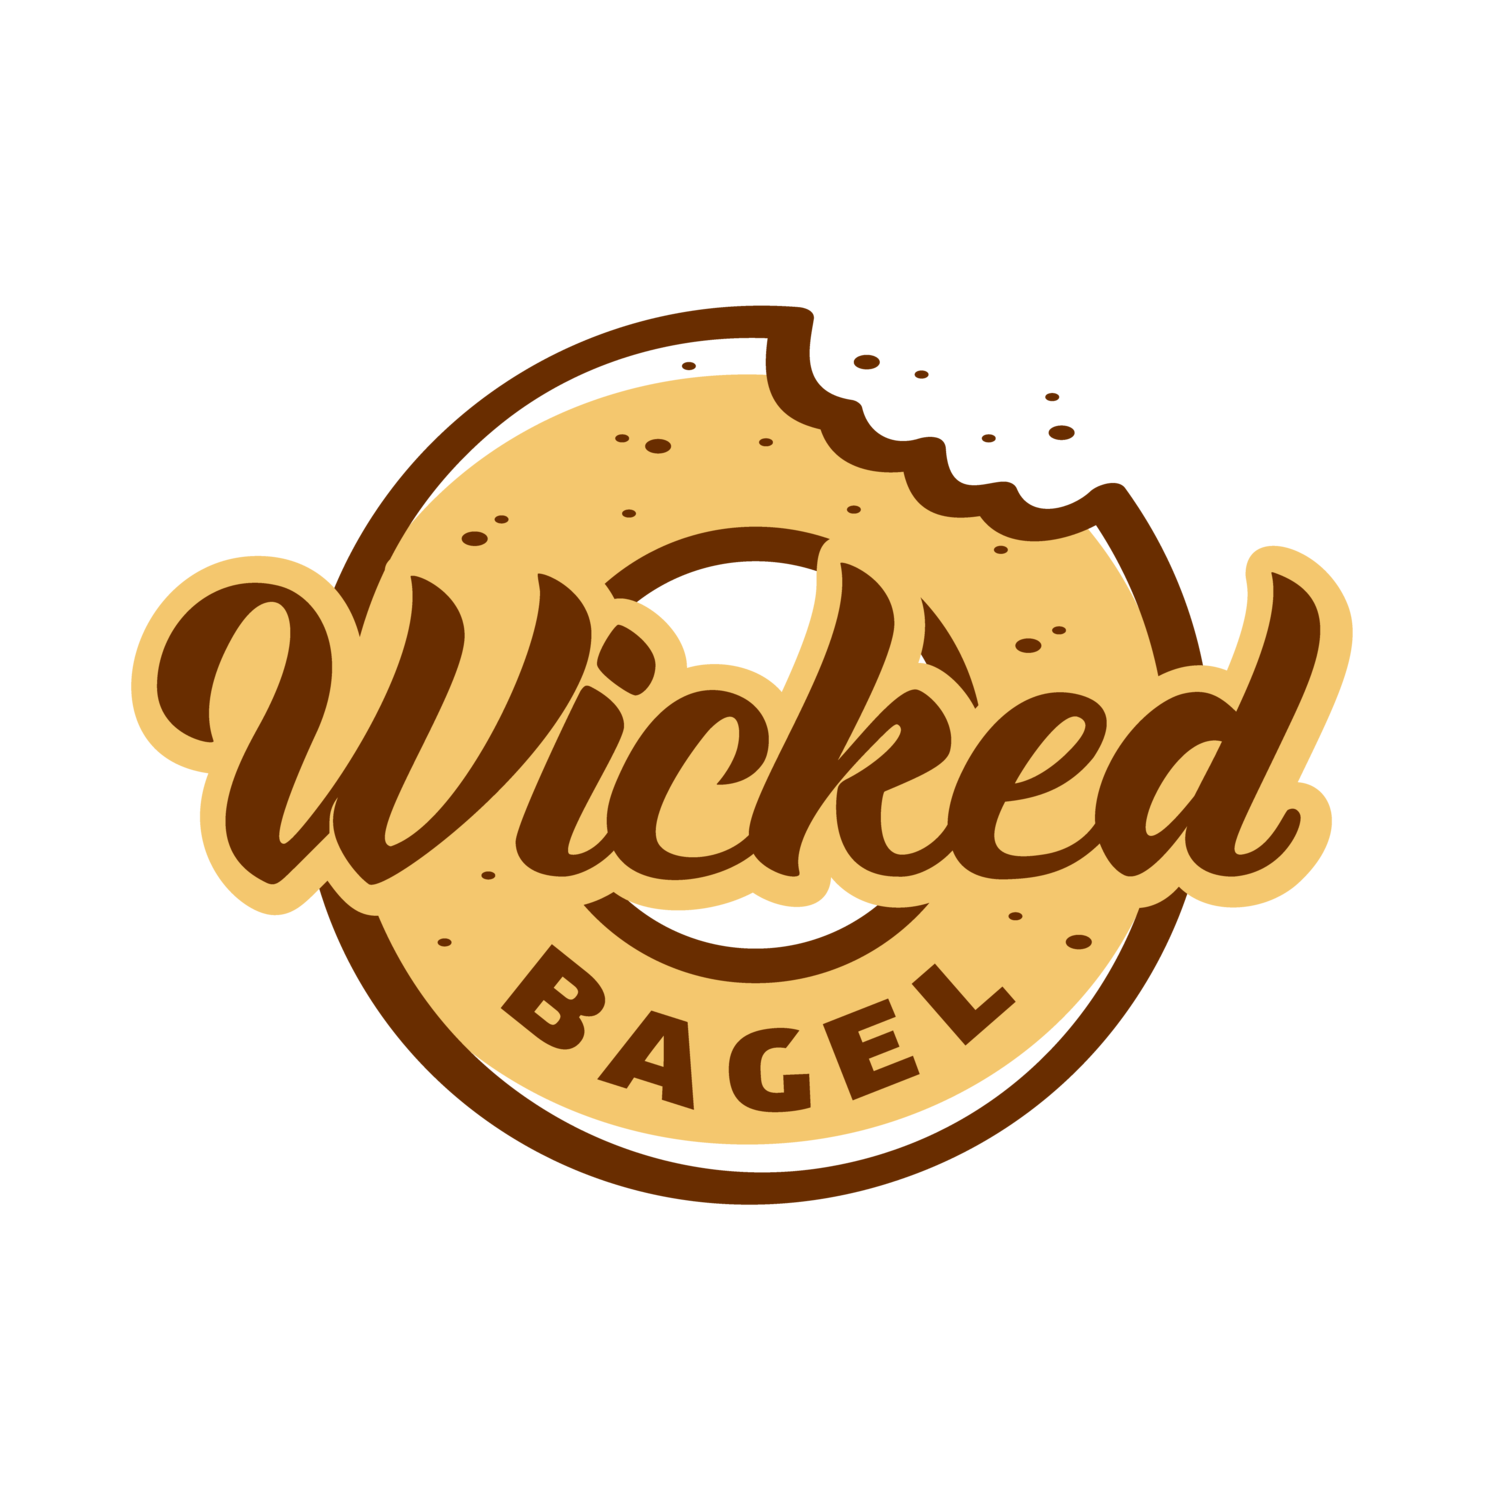 Wicked Bagel